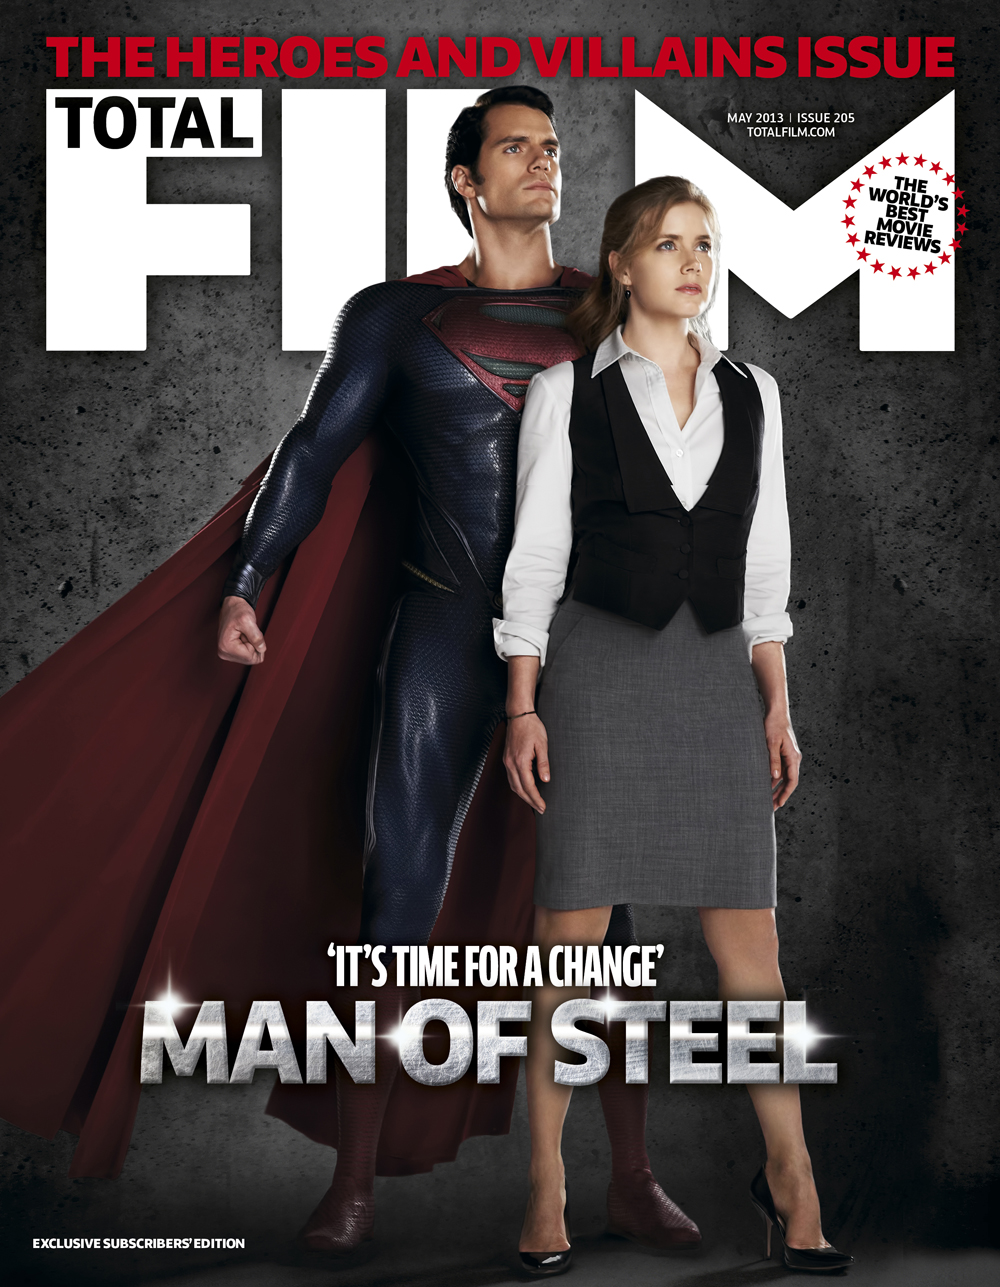 total-films-man-of-steel-cover-is-online-now-130036-a-1363097020-1000-100